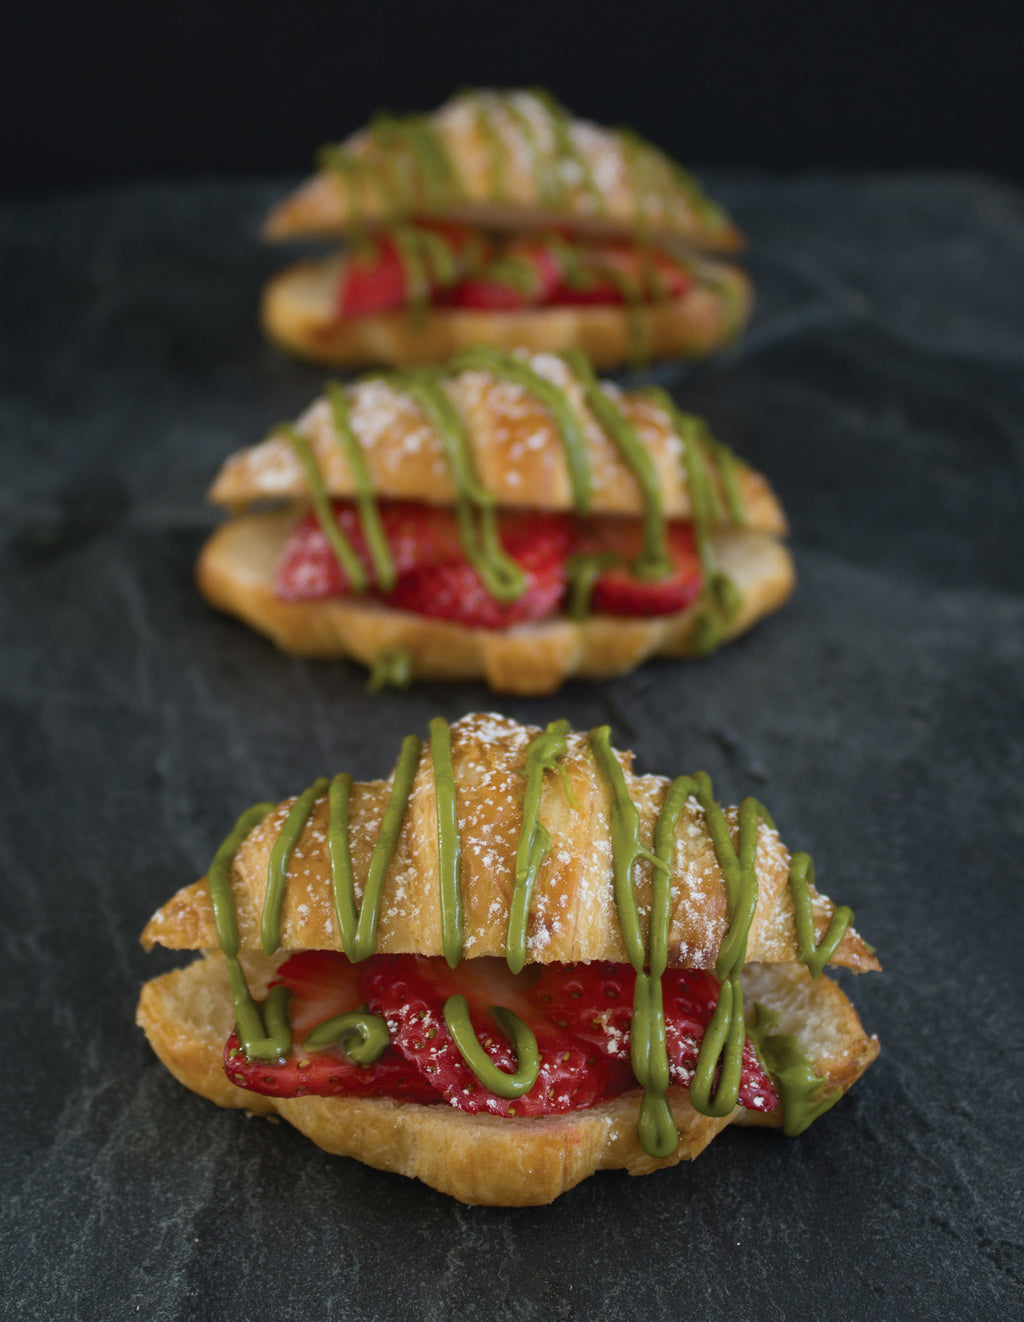 Mini Croissants Stuffed with Strawberries and Decorated with Matcha Pistachio Crème Spread & Powdered Sugar